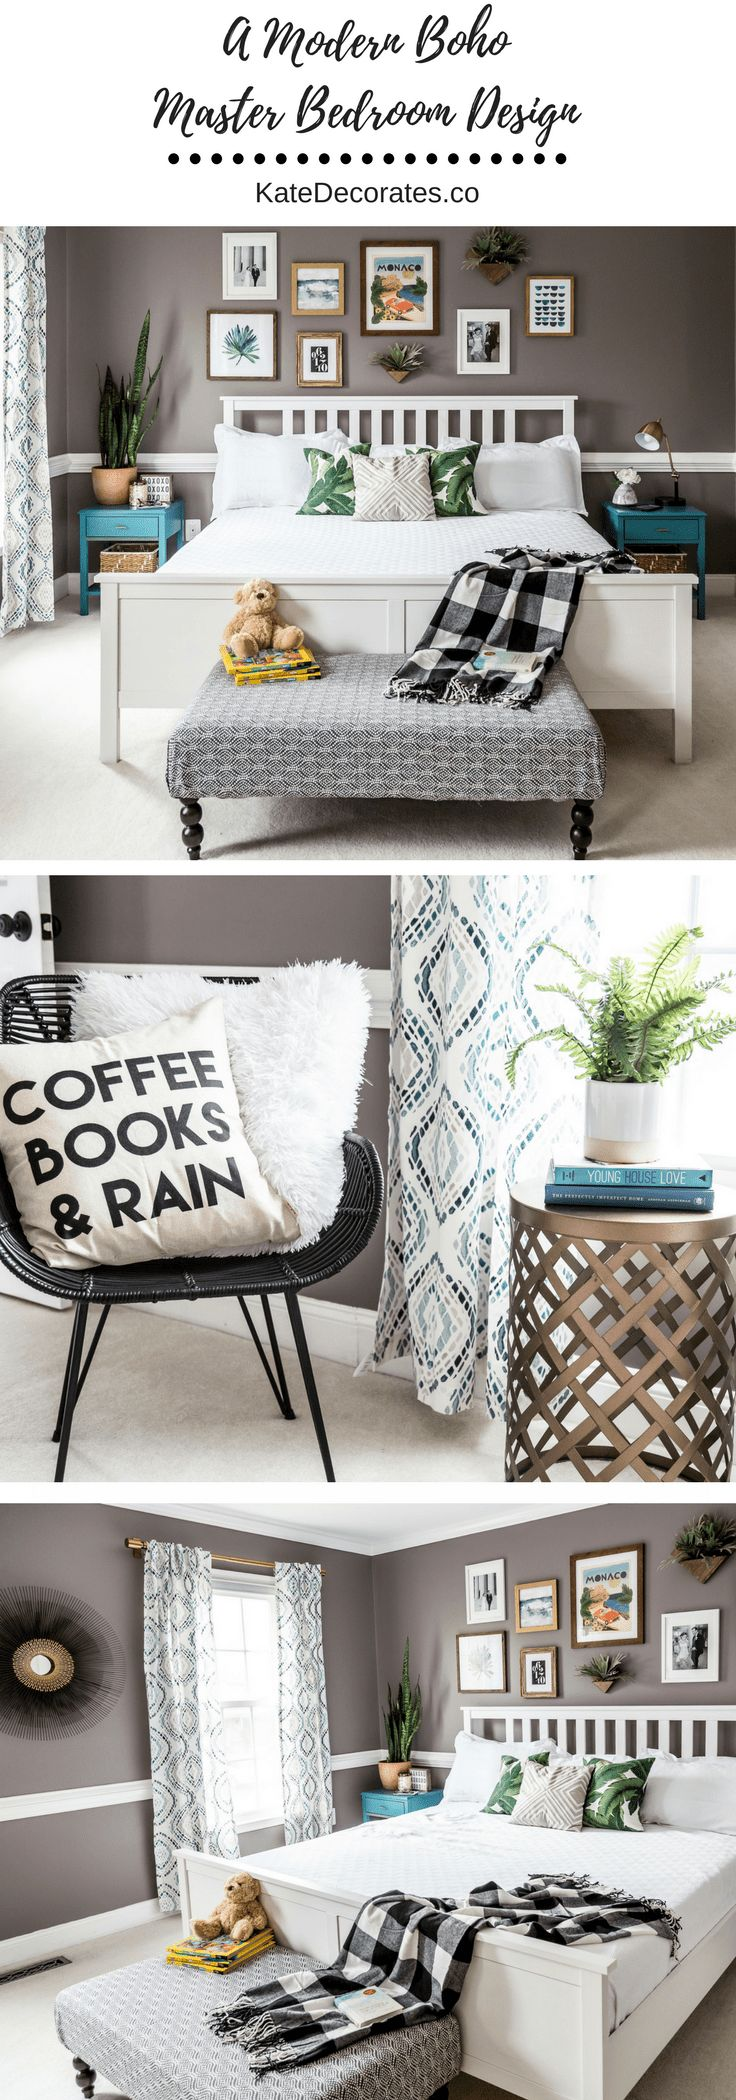 Love, love, love this modern boho master bedroom design! Even better? It was done on a budget. Check it out at KateDecorates.co.